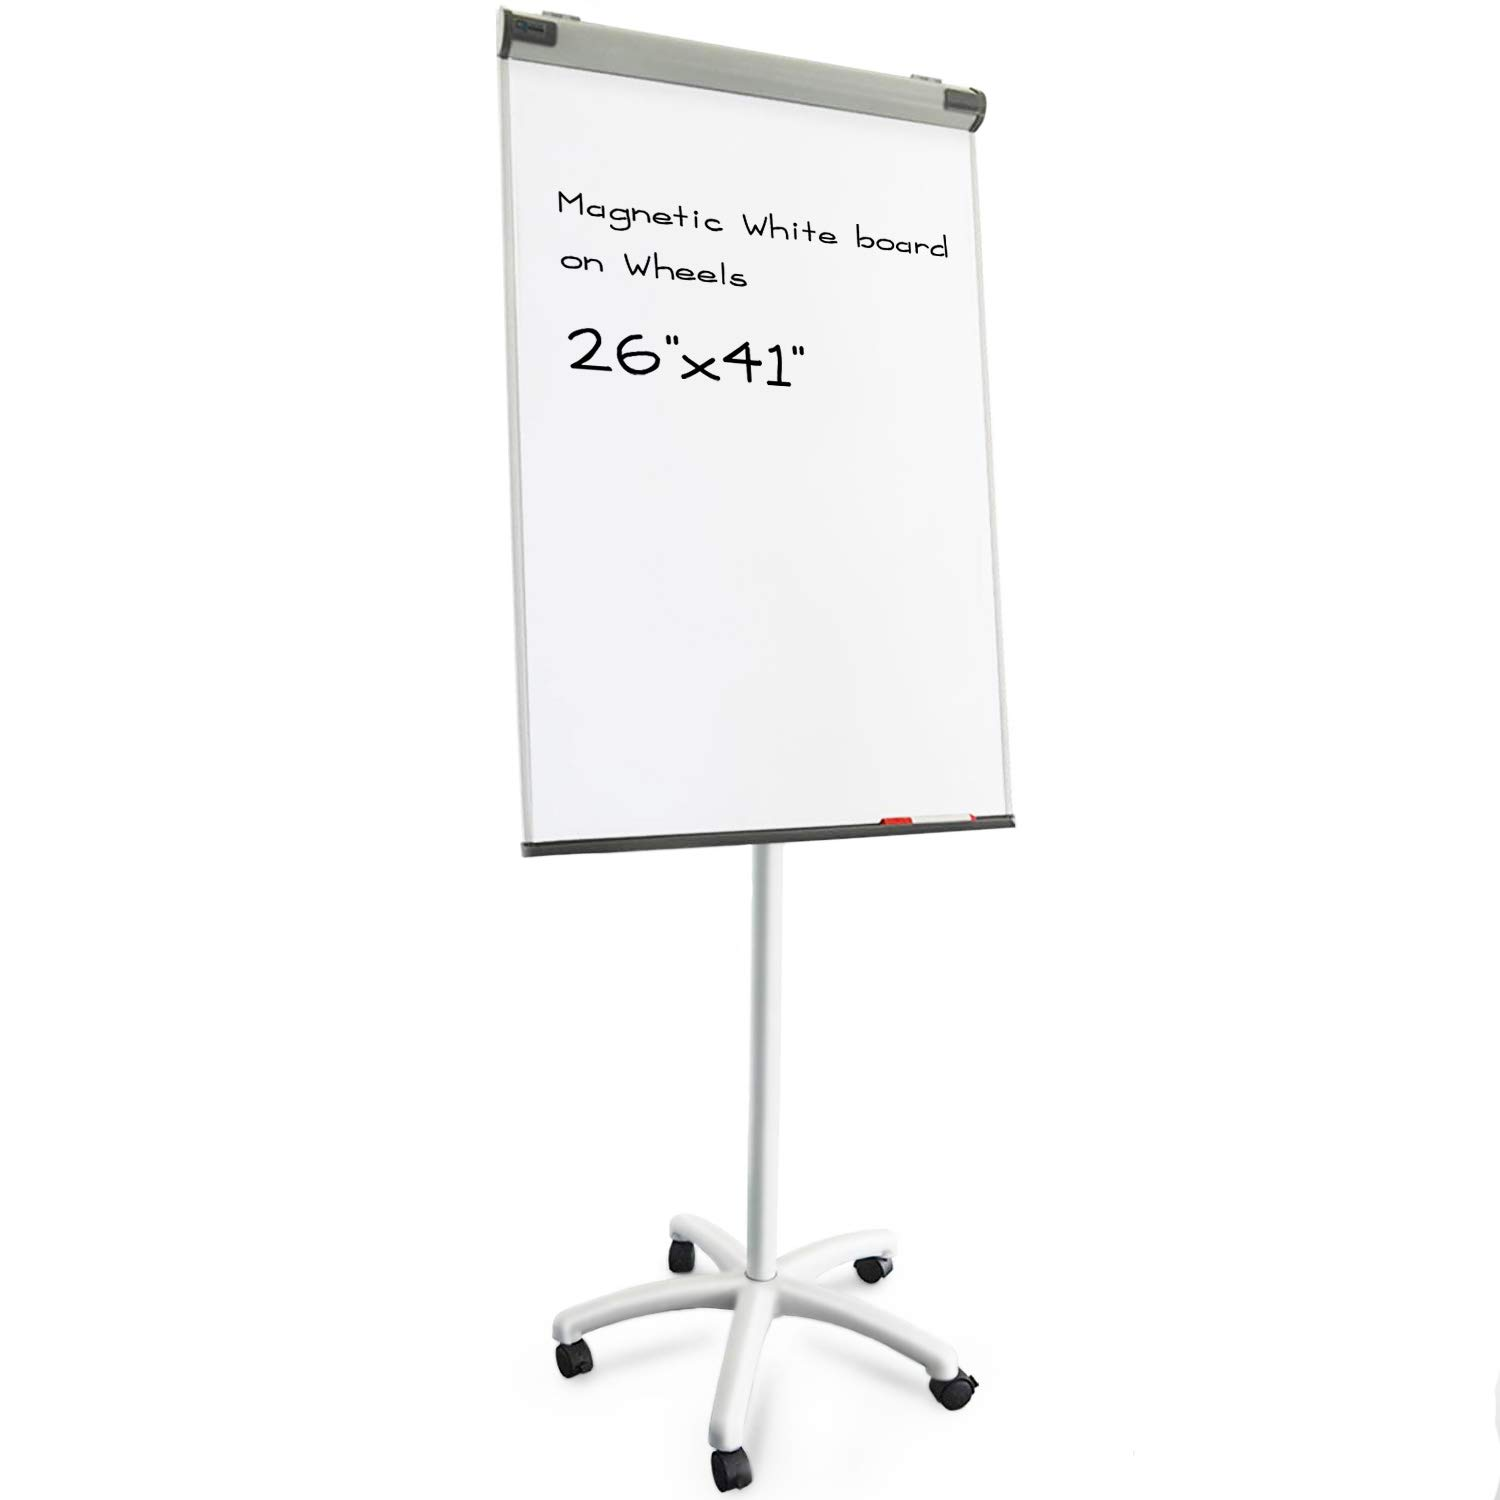 Master Of Boards Flip Chart Easel Dry Erase Easel Portable White Board Easy Setup Magnetic Stand Available With Tripod Or Wheels 27 X 41 White Buy Online At